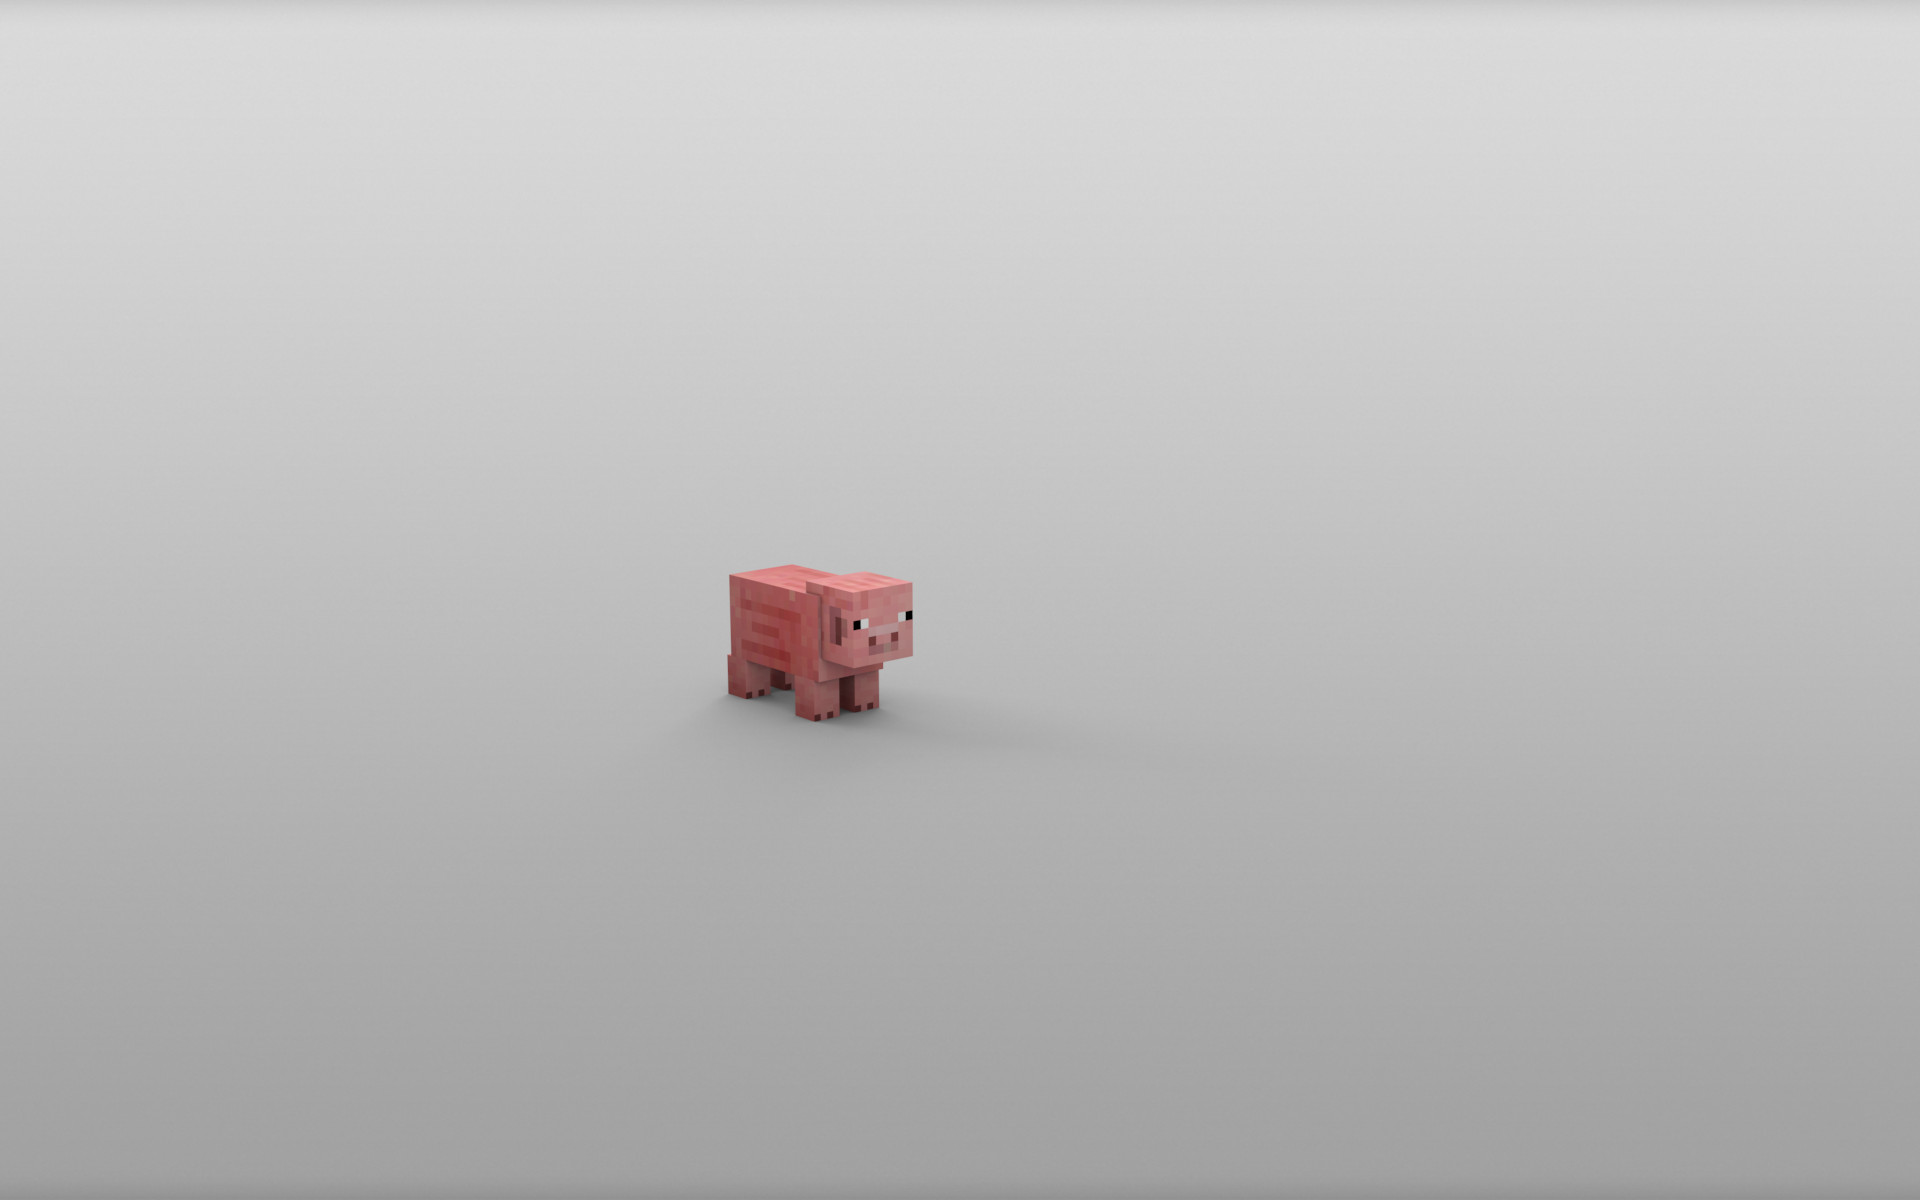 minecraft pig wallpapers download - photo #8